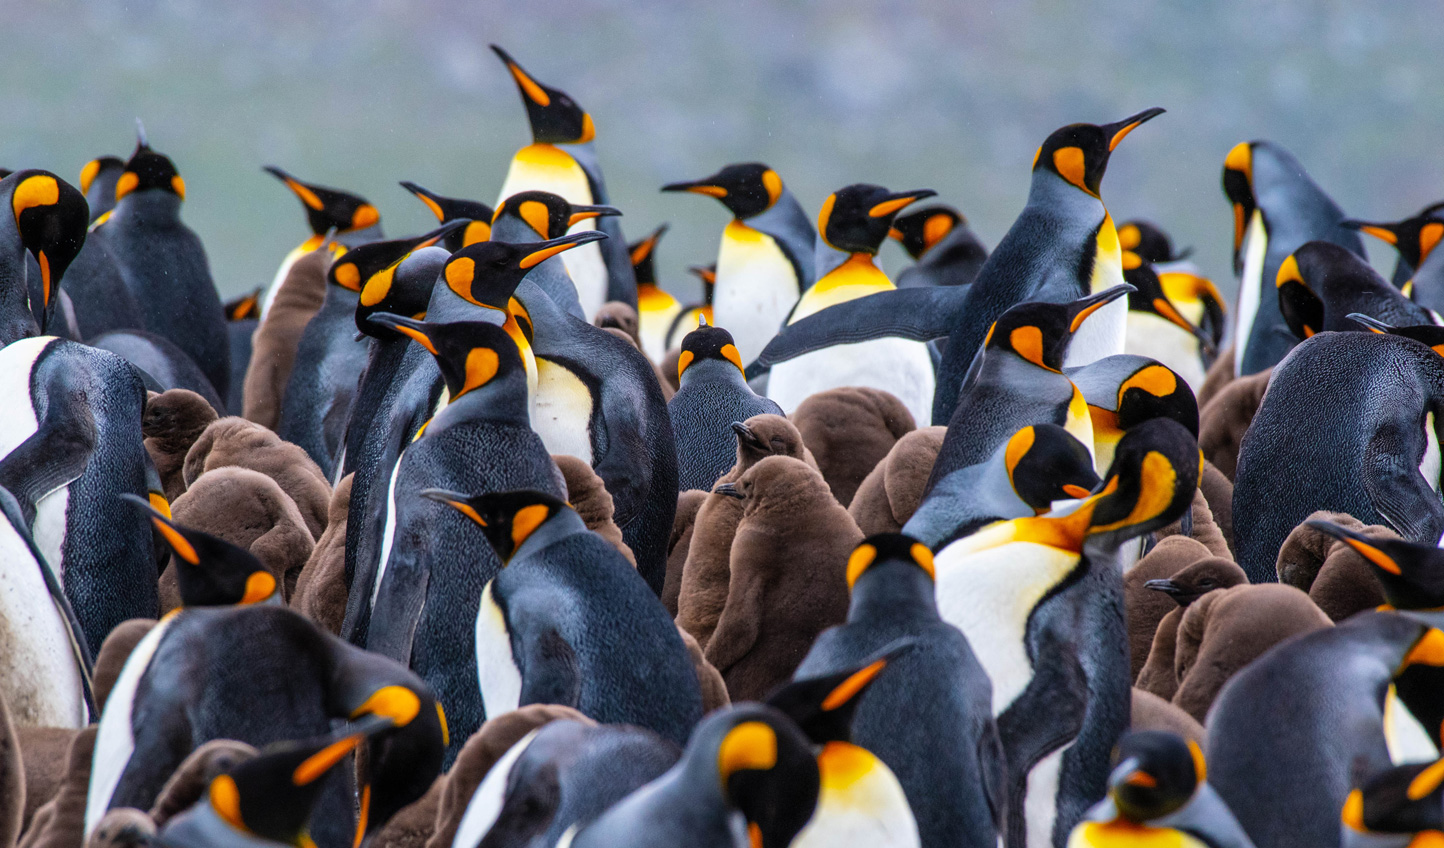 Spot colonies of Emperor Penguins on your travels